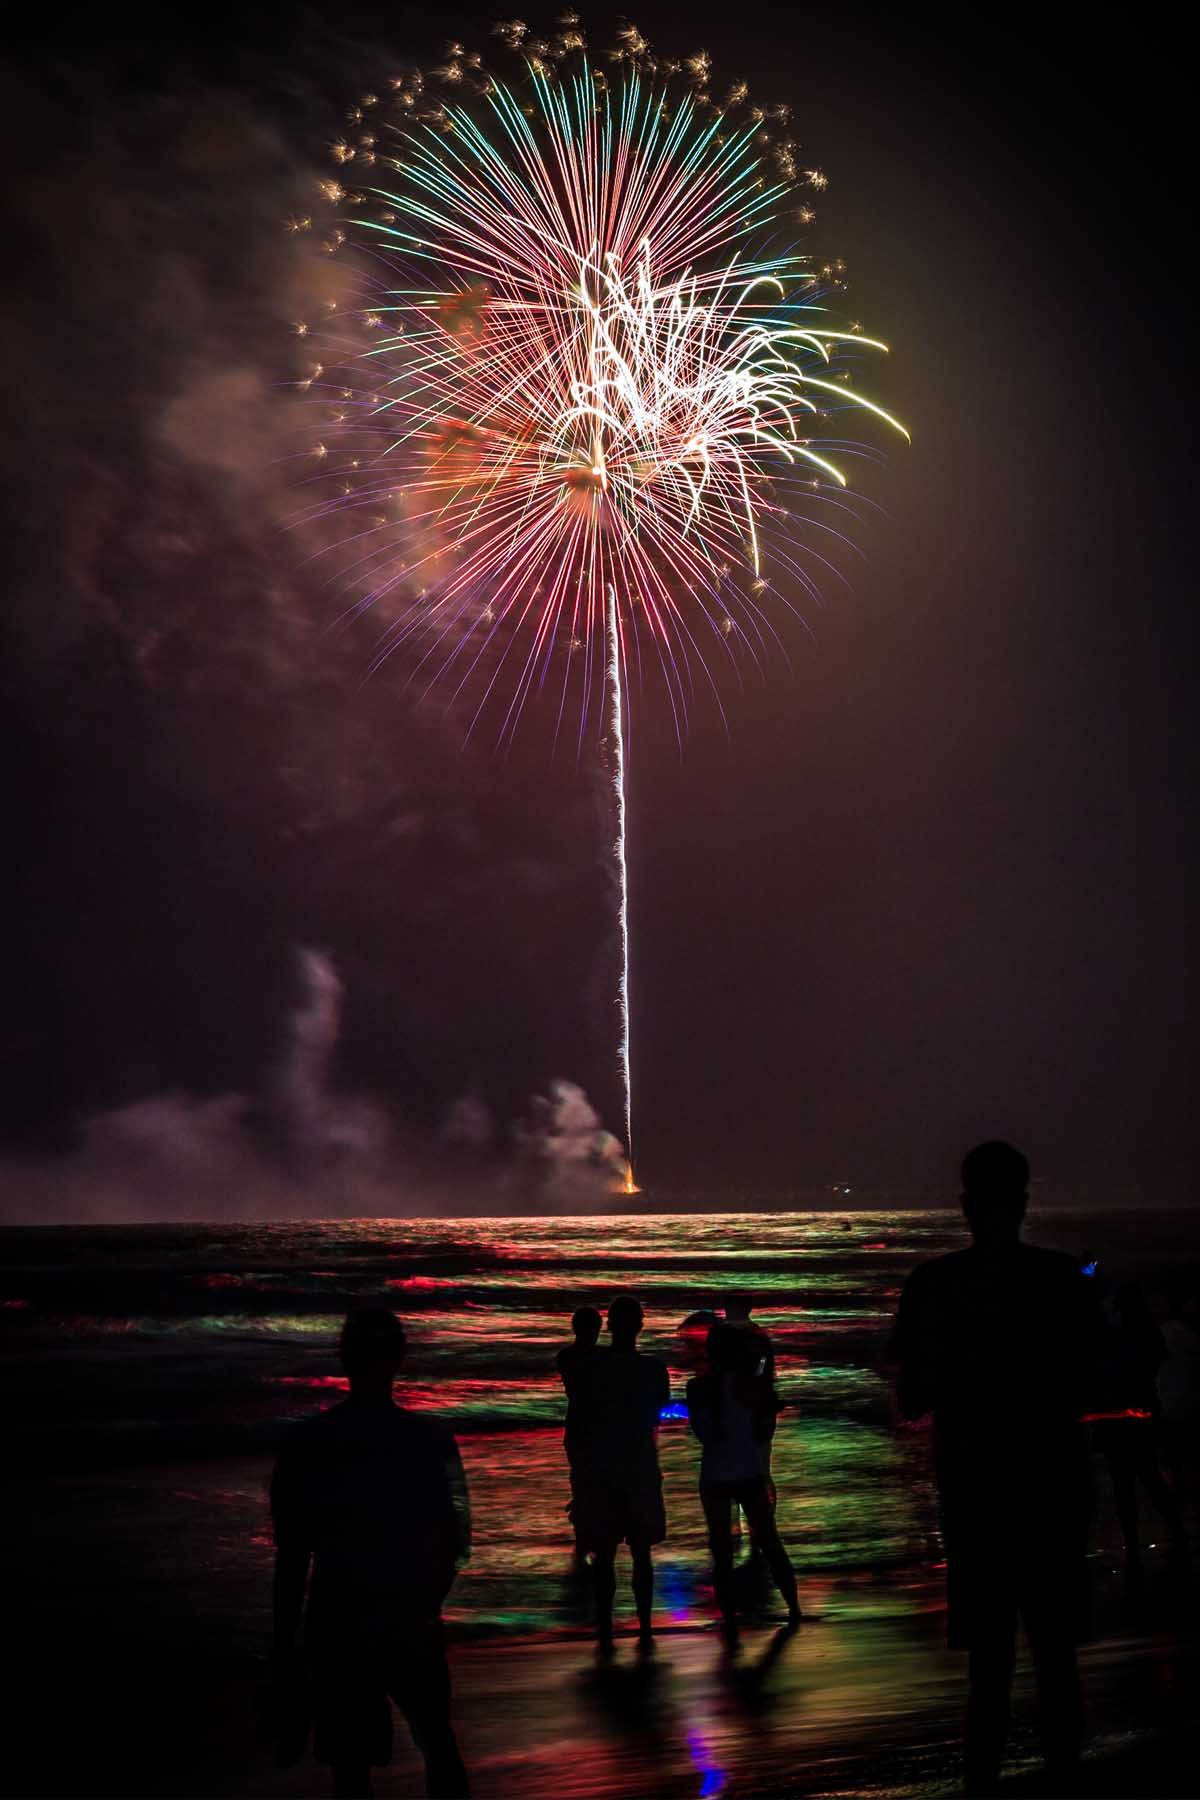 15 Fun 4th of July Activities for Family Things to Do on the